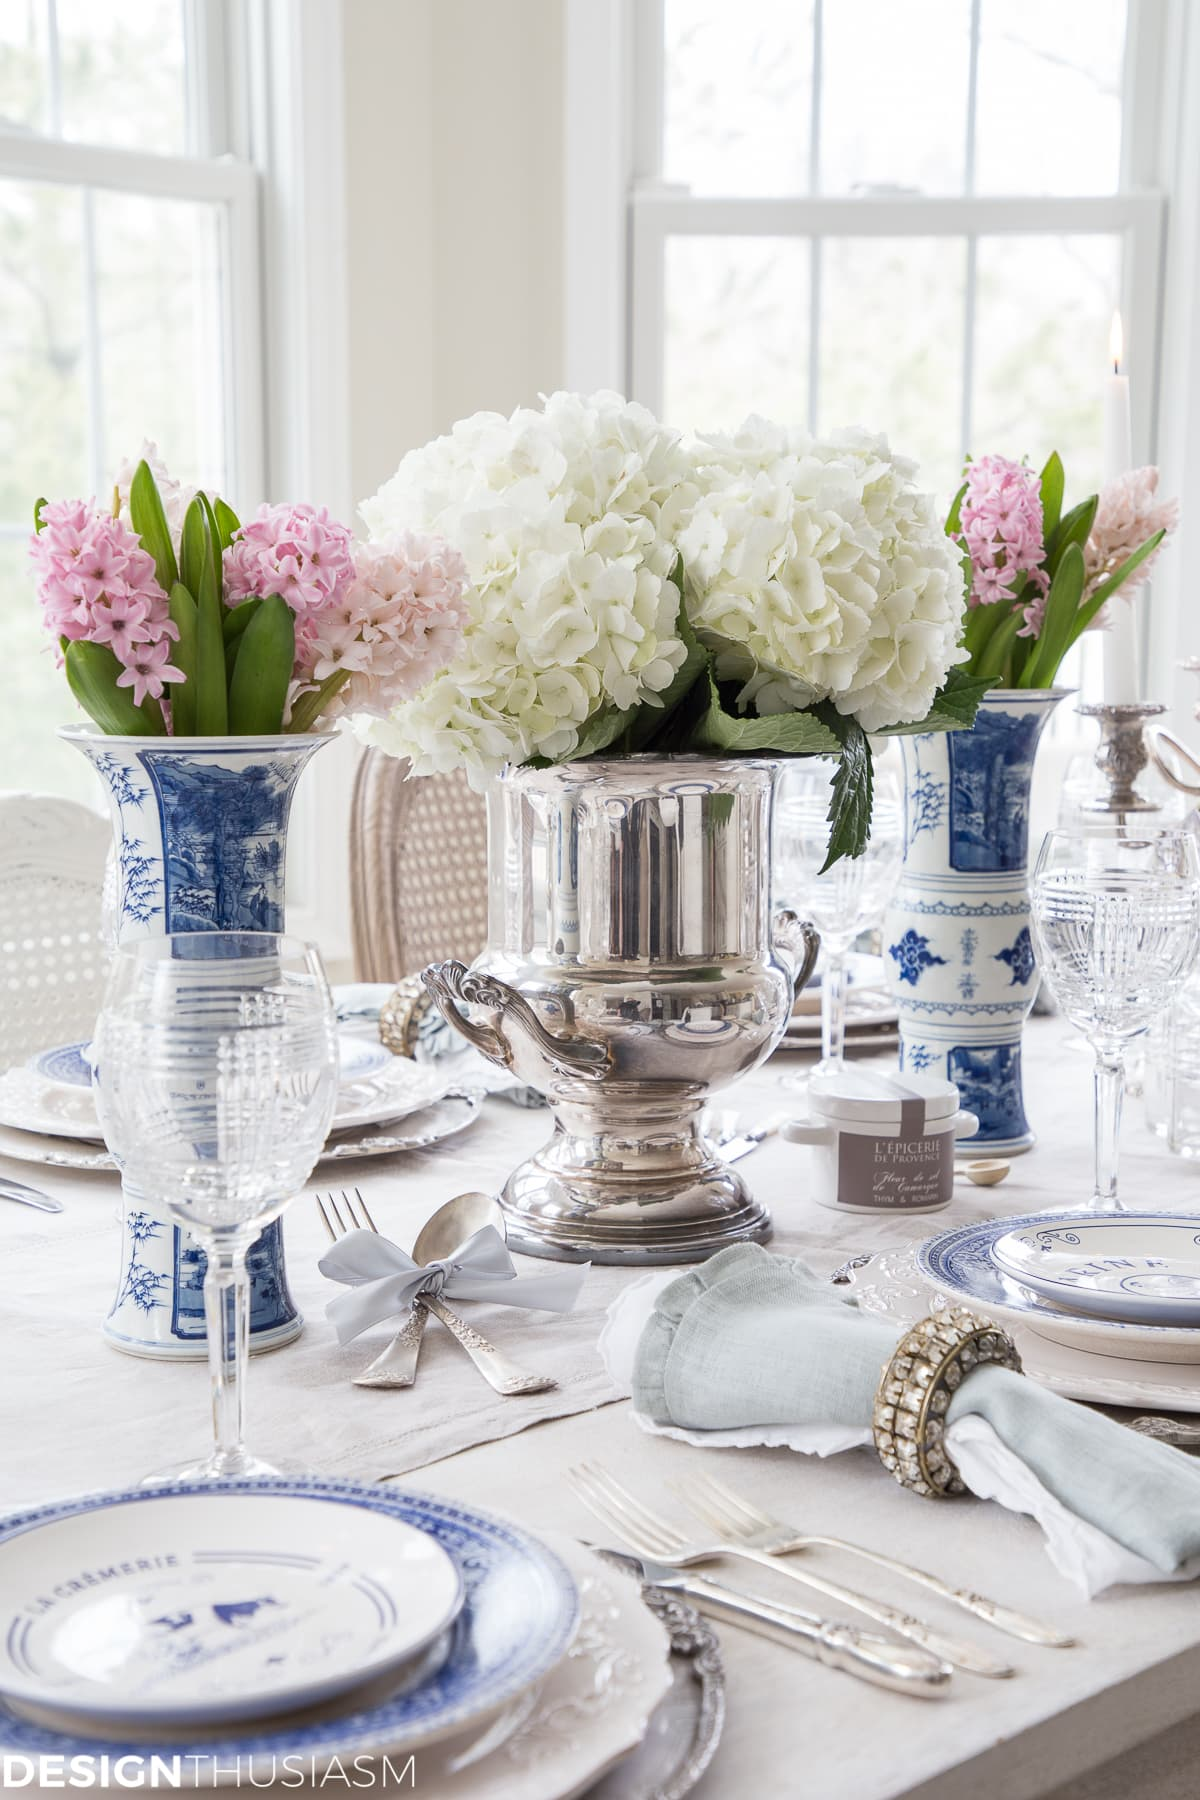 Unique table decor upgrades - designthusiasm.com